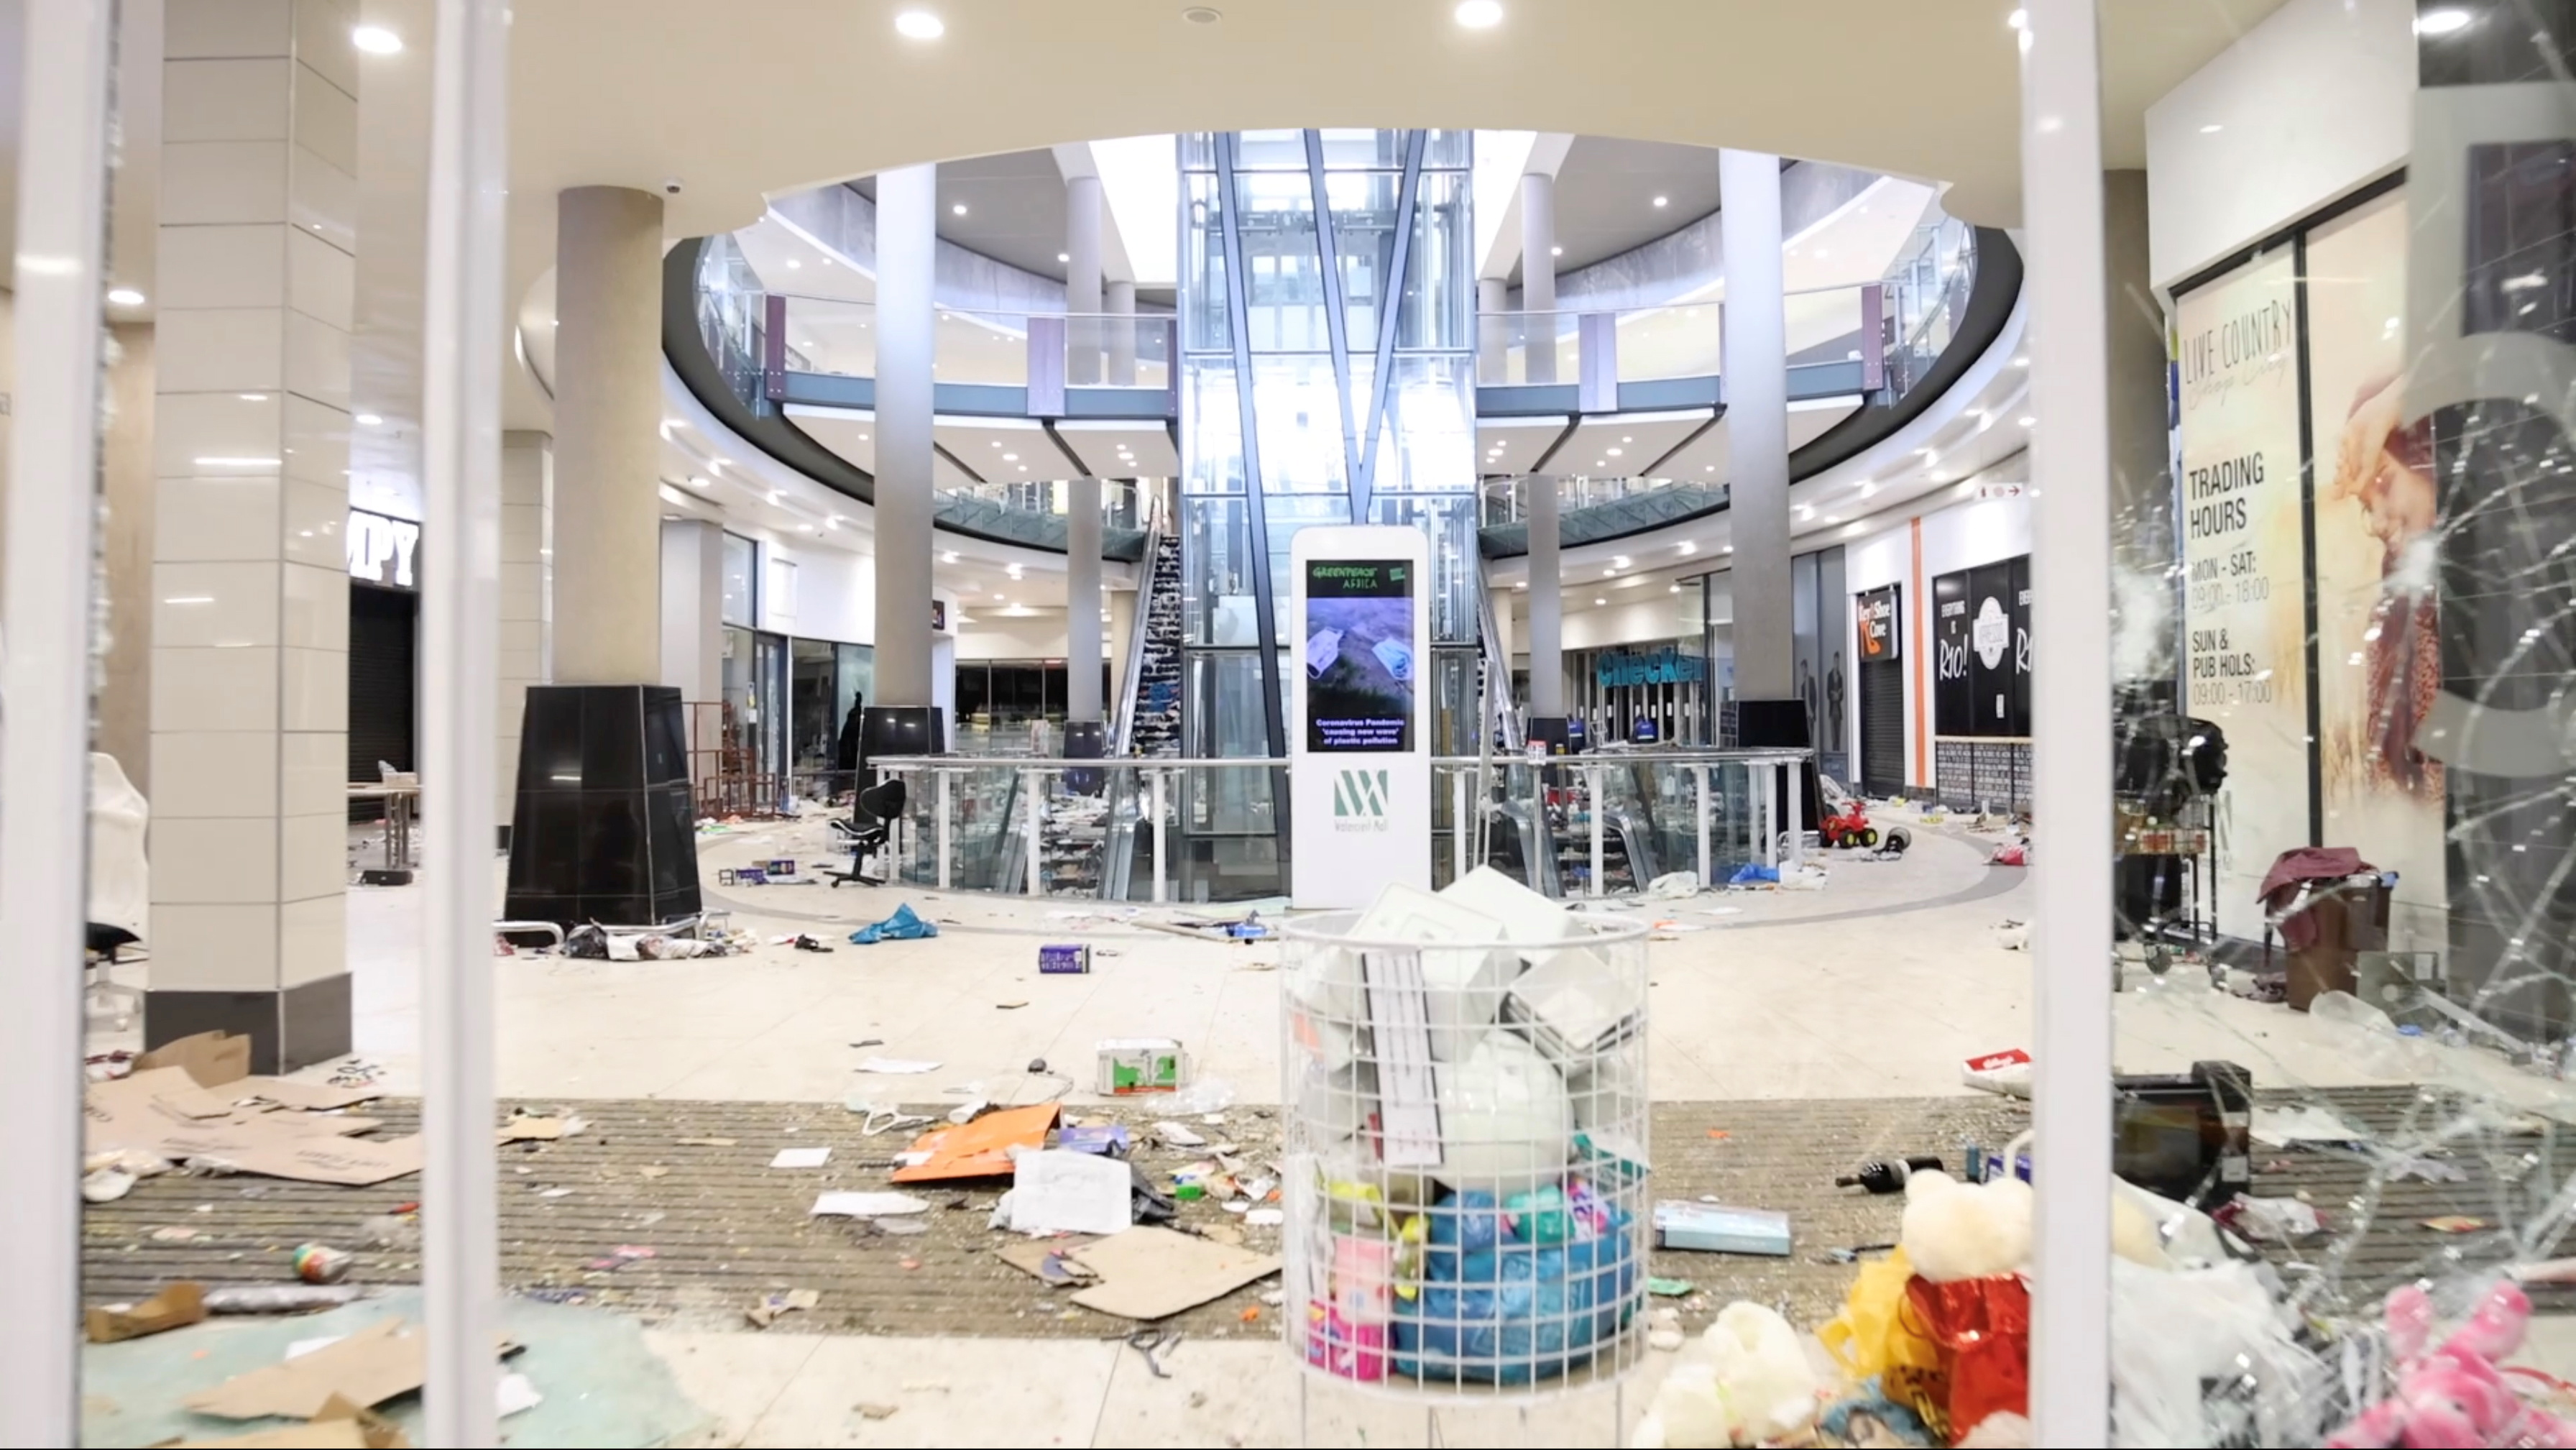 A view shows damage inside a shopping mall following protests that have widened into looting, in Durban, South Africa July 13, 2021, in this screen grab taken from a video. Courtesy Kierran Allen/via REUTERS